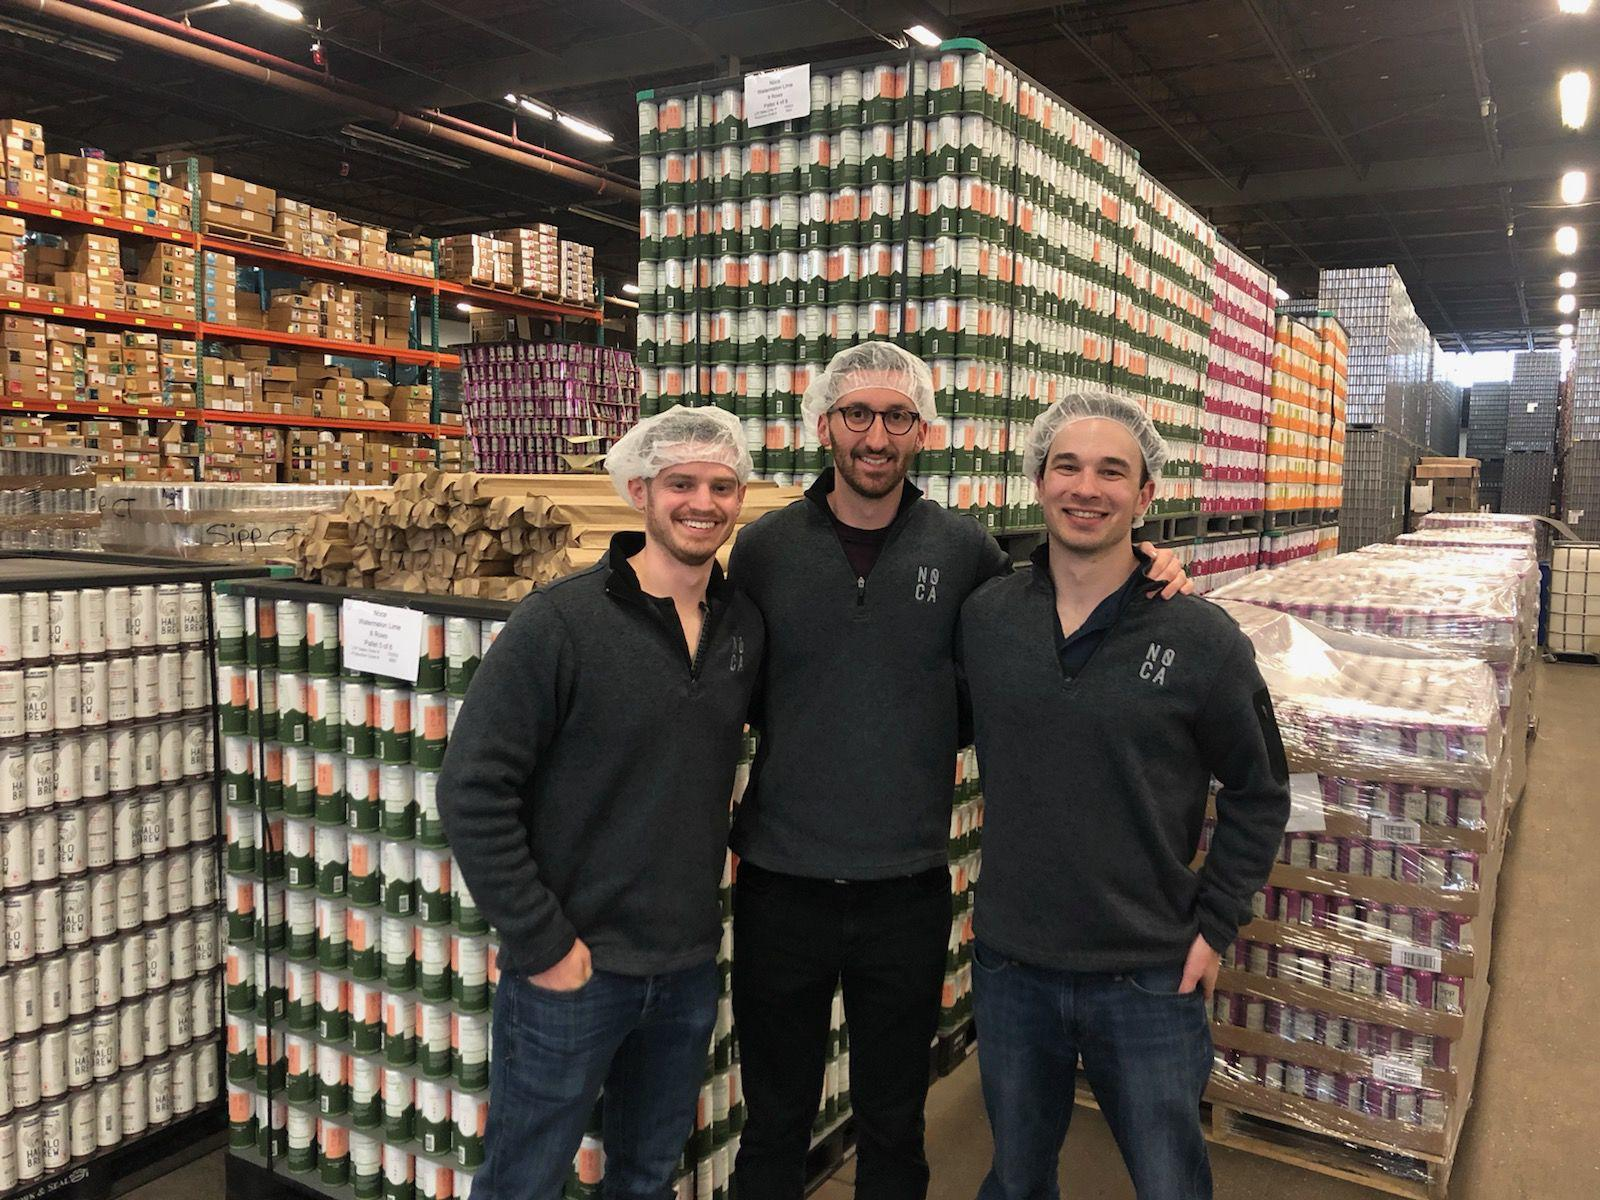 NOCA co-founders, from left, Alex Febonio, Richard Roy and Galen Hand stand by pallets of their spiked water at the plant in Baltimore where NOCA is made and packaged.